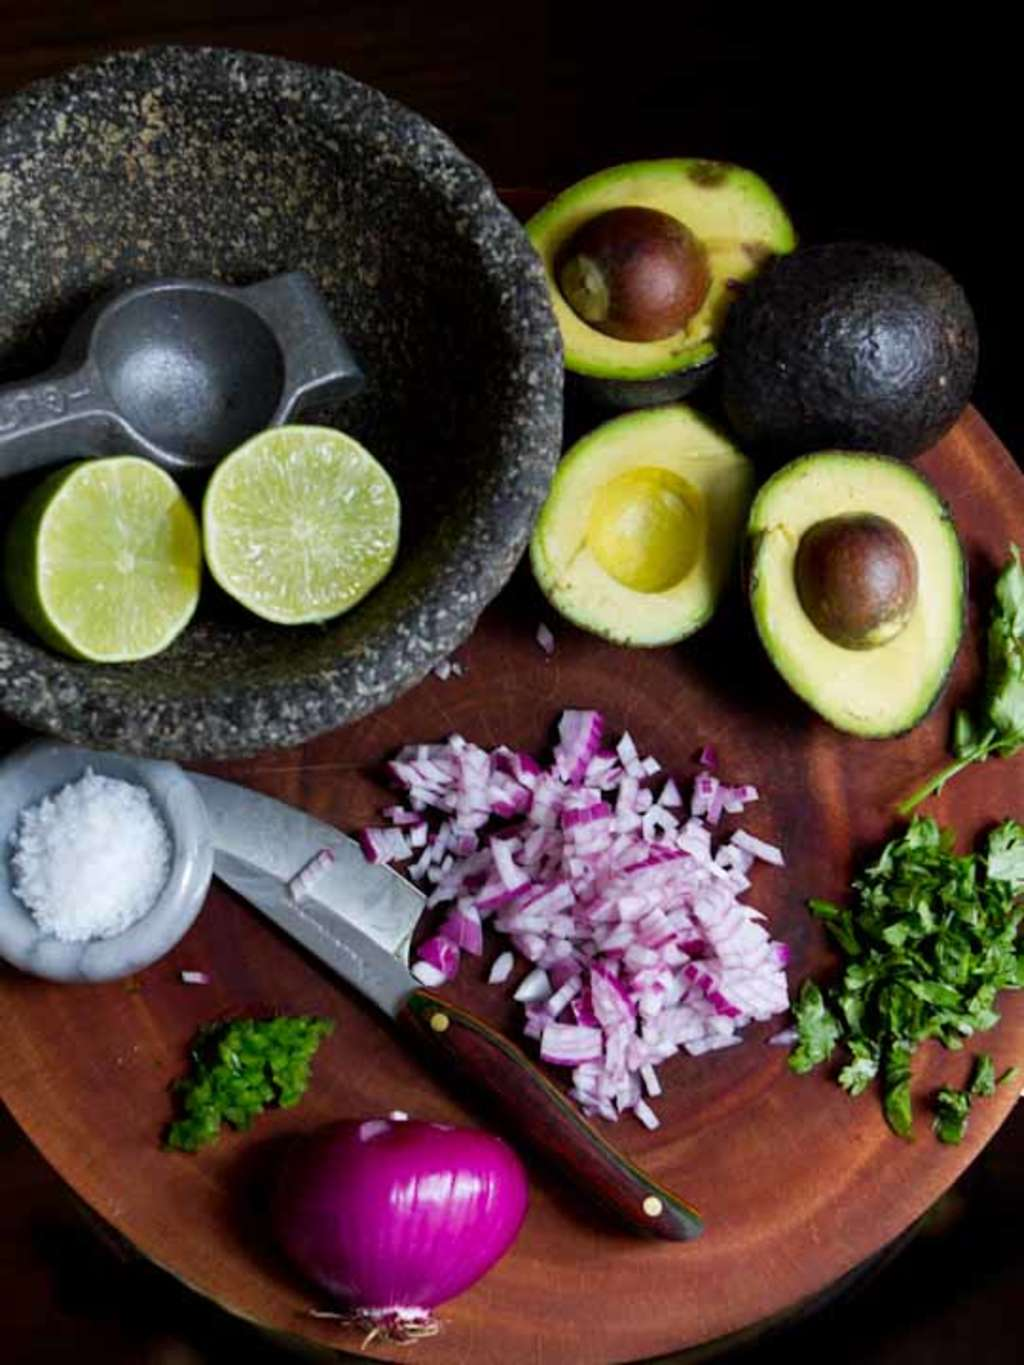 12 Reasons to Be Grateful for Mexico & the Food It Gave Us